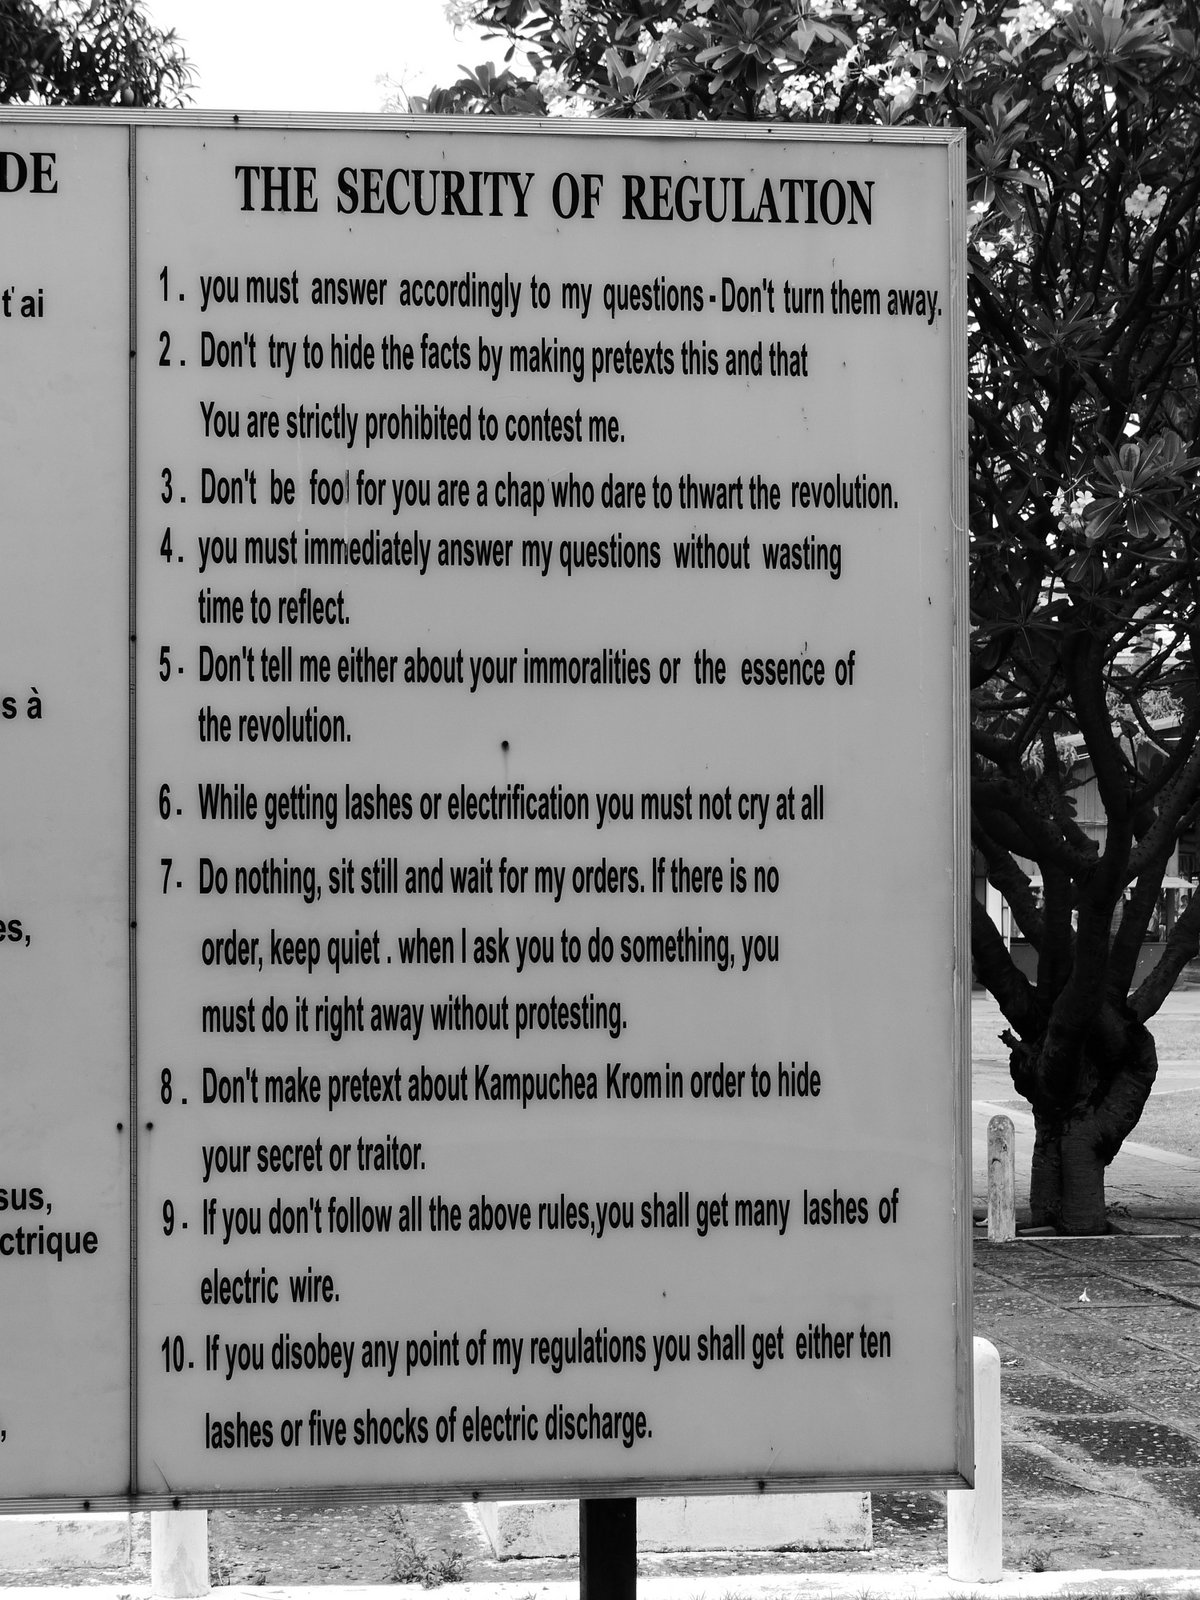 The Rules of Interrogation for prisoners at S-21. During the Khmer Rouge regime, more than 14,000 people were imprisoned, interrogated, and tortured here.